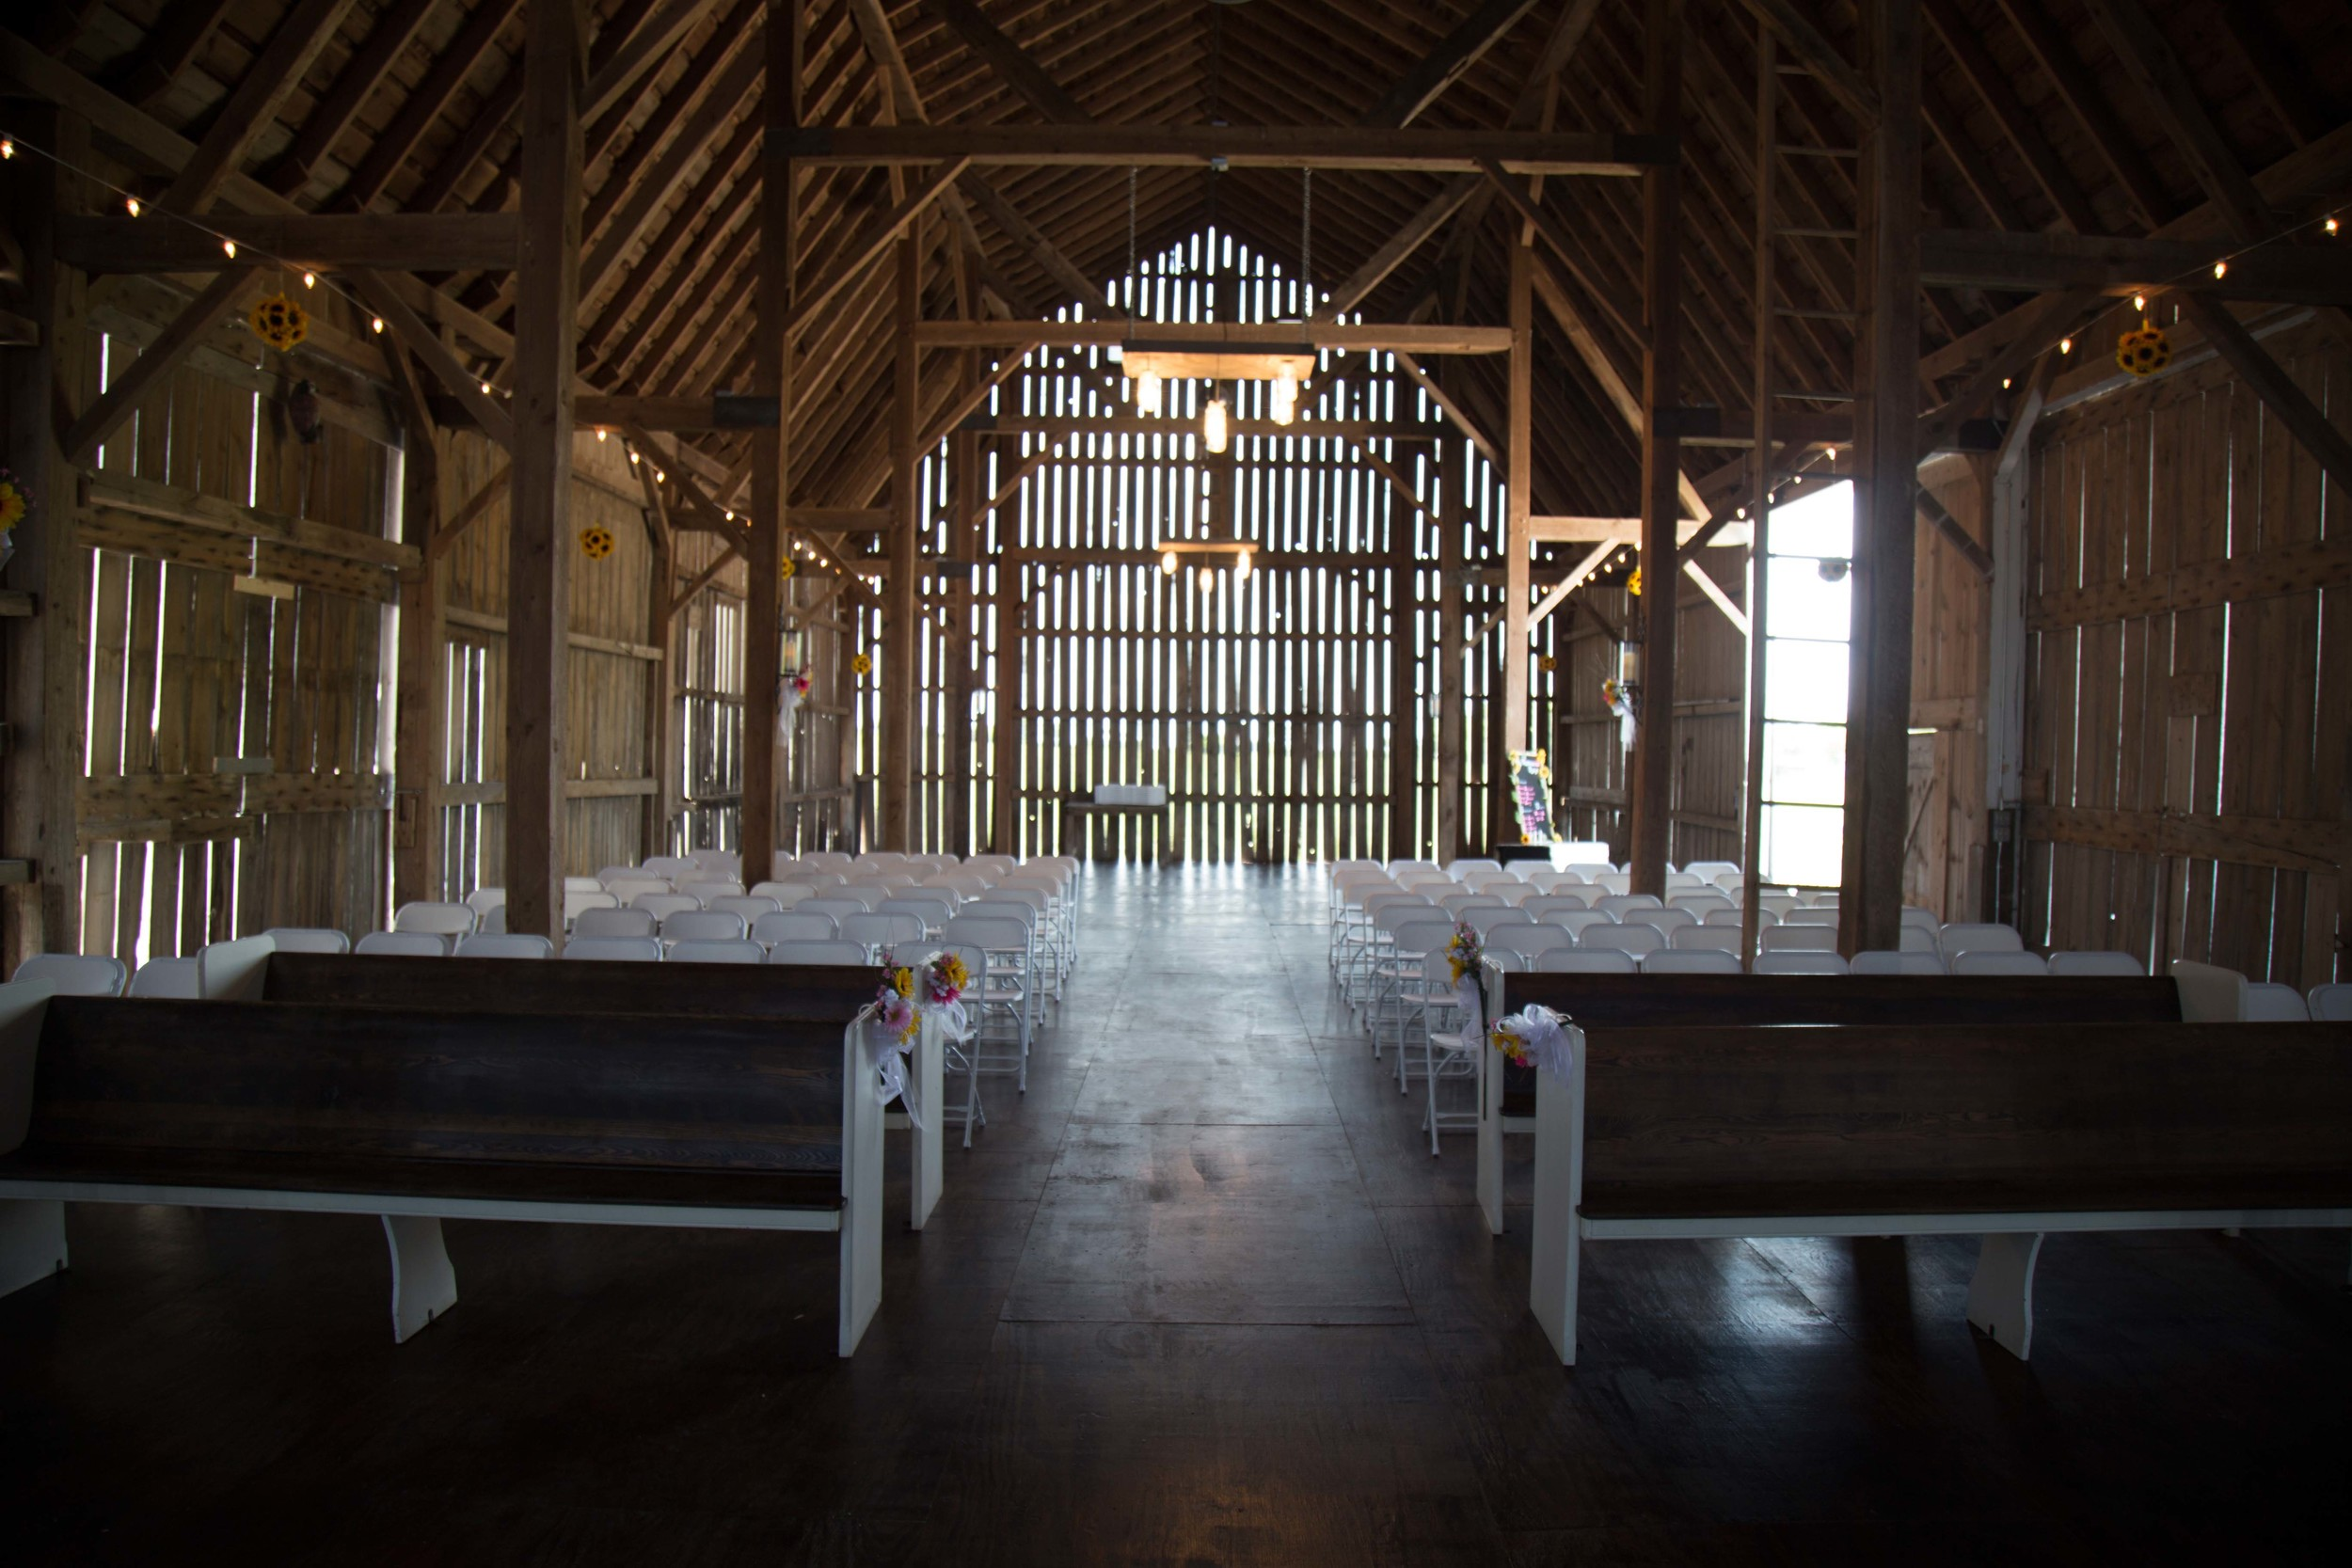 6_27-Barn_Pew_Ceremony_6154 2.jpg